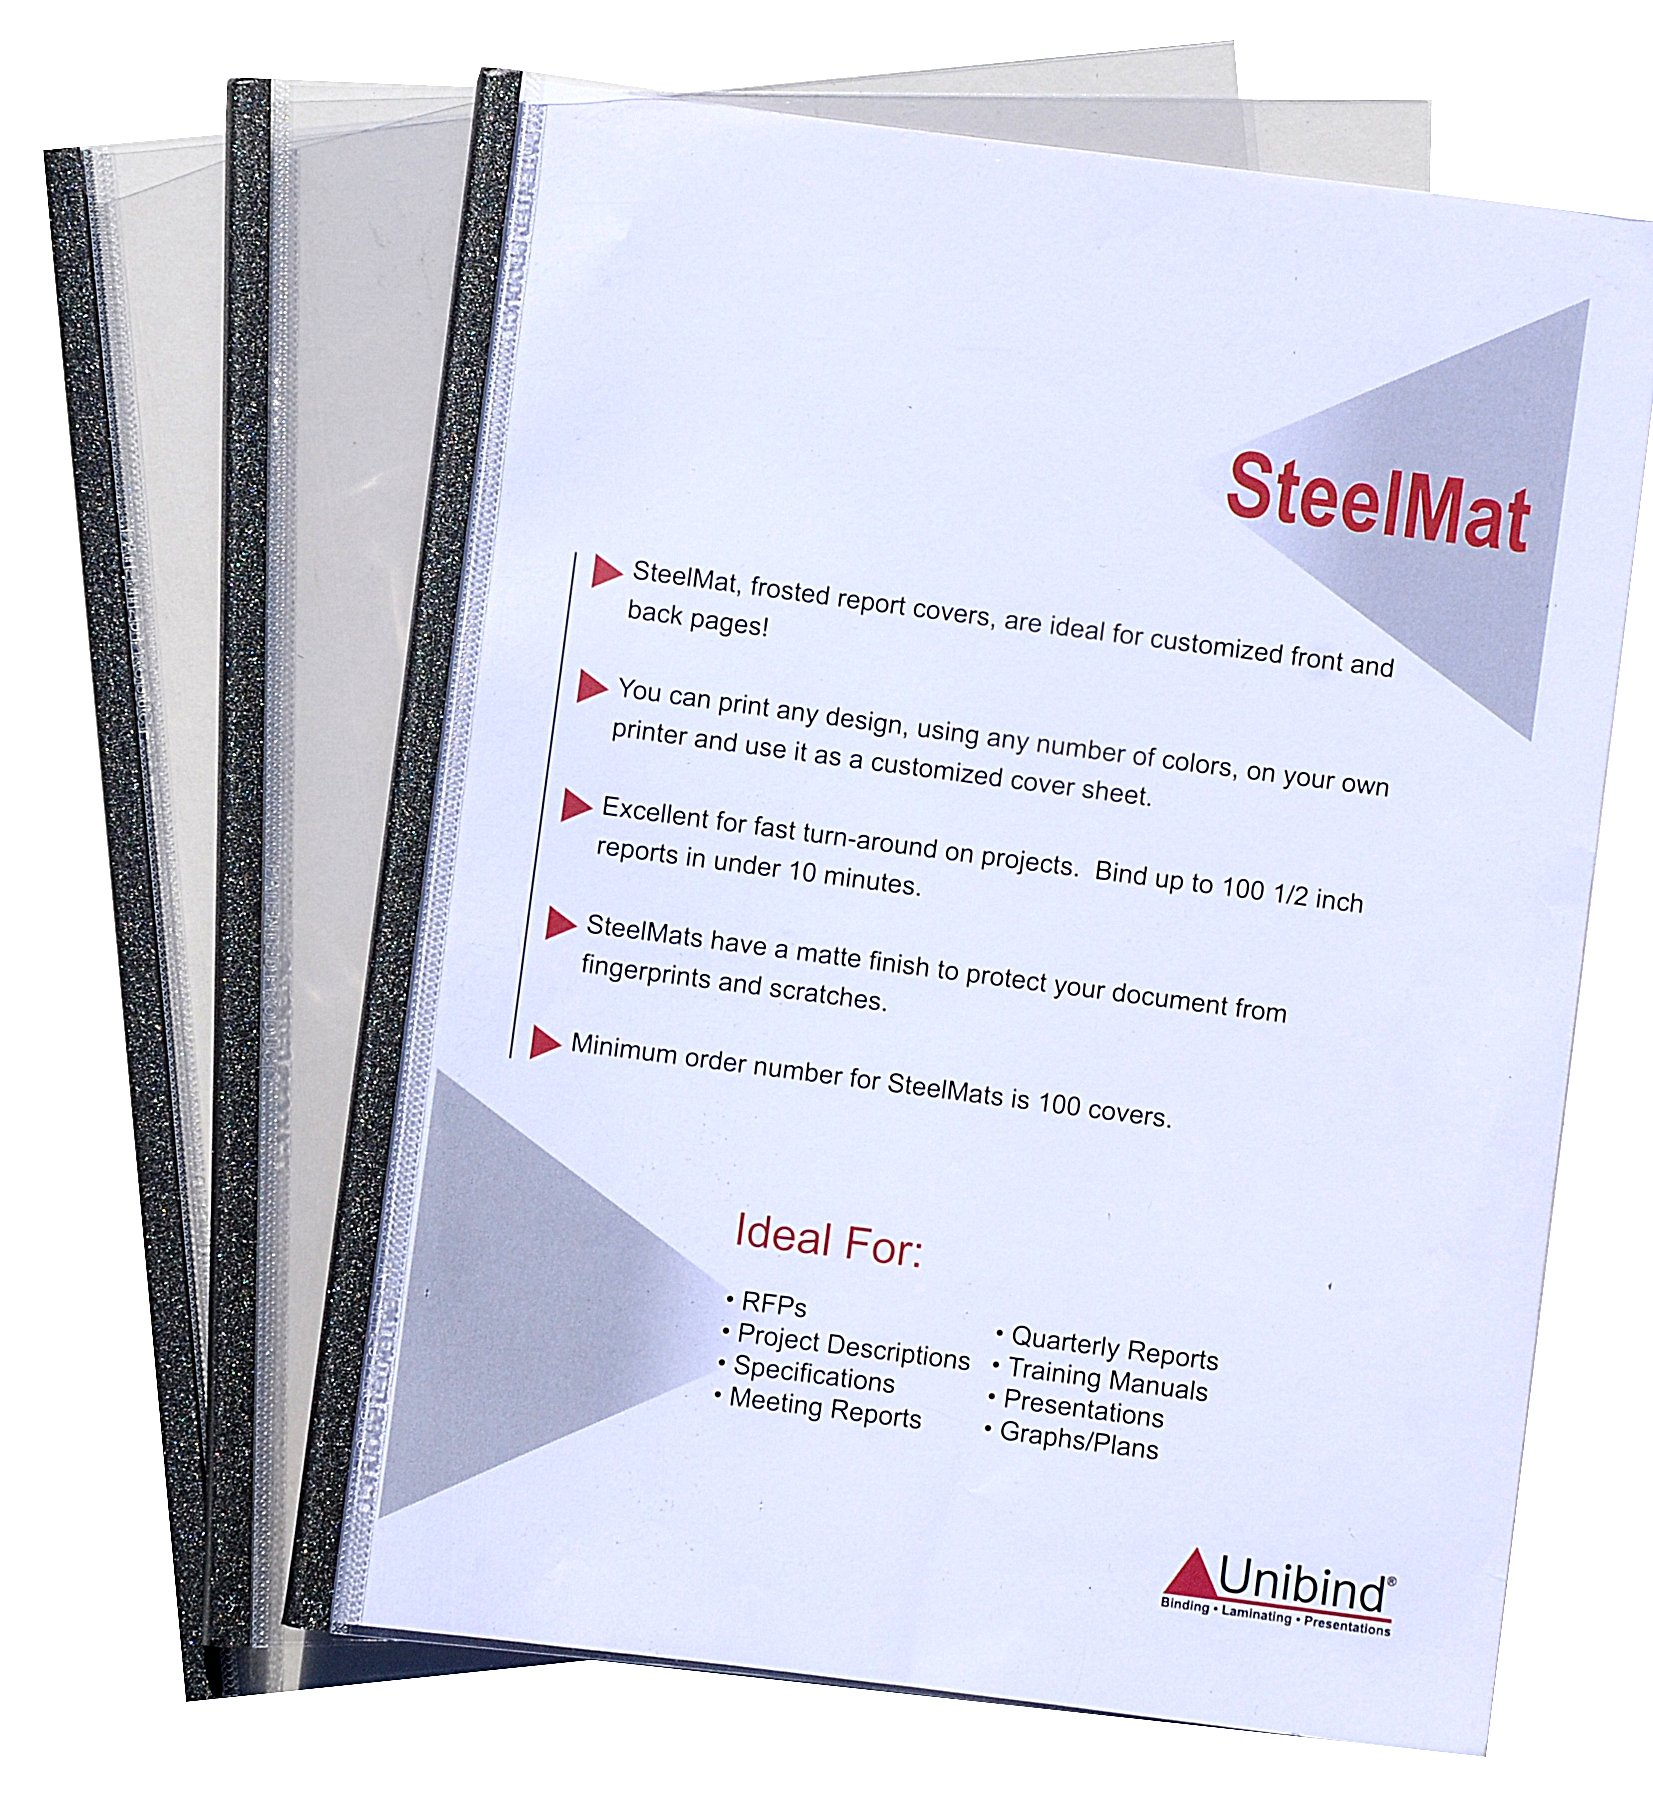 Unibind 5mm - Graphite - 100pcs SteelMat Frosted Covers